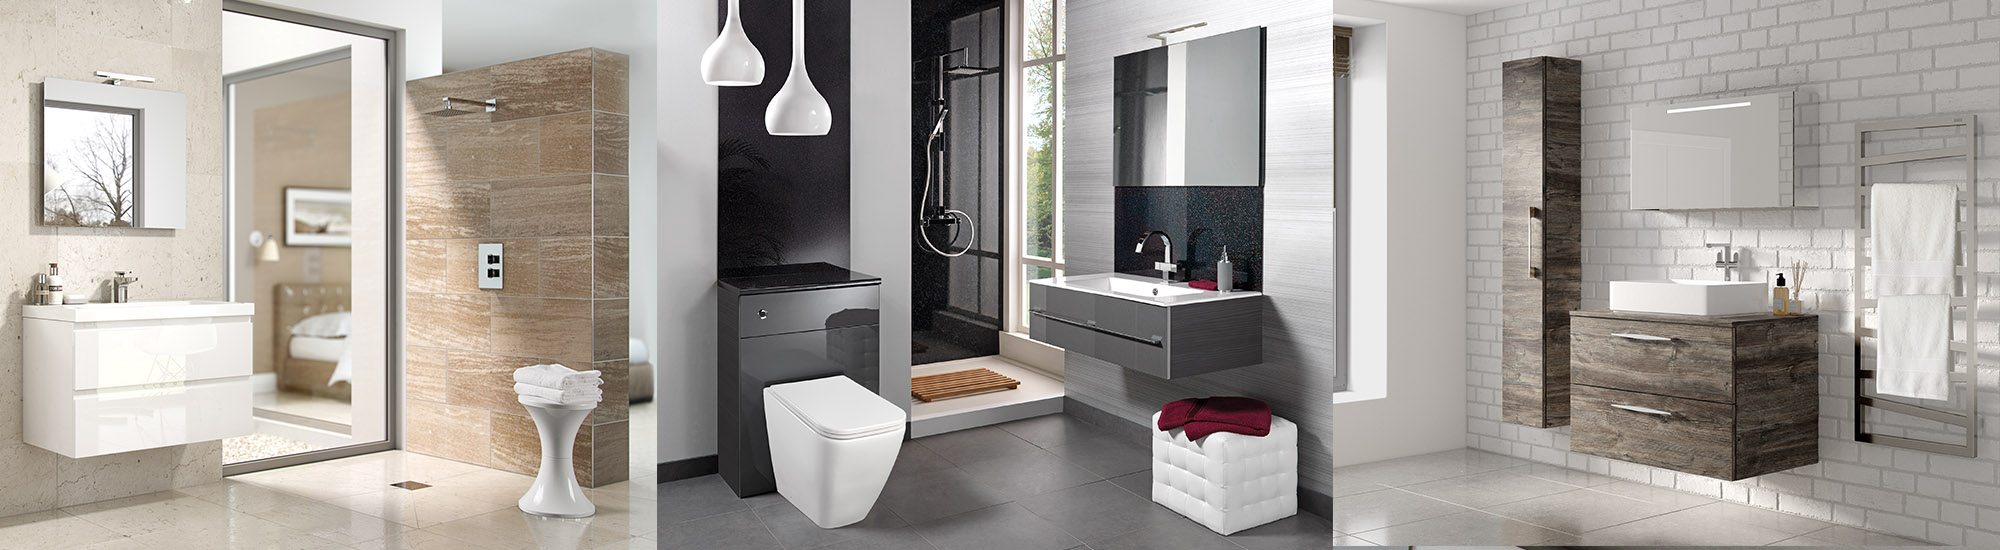 Bathroom Designer Exeter